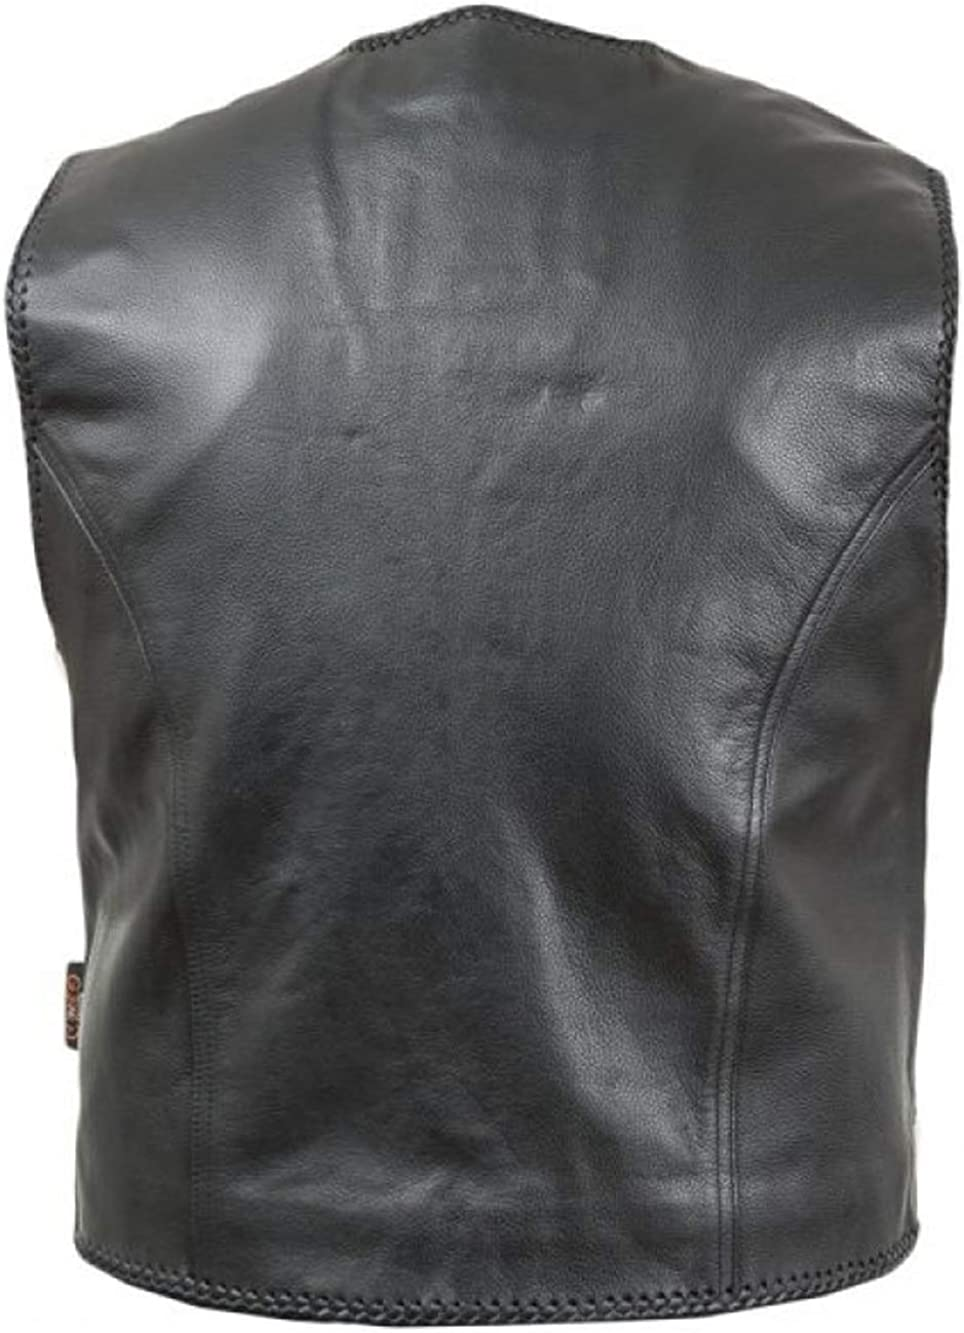 O YES Men Biker Motorcycle Riding Hand Braided Real Cow Leather Vest Waistcoat Big Pockets Black